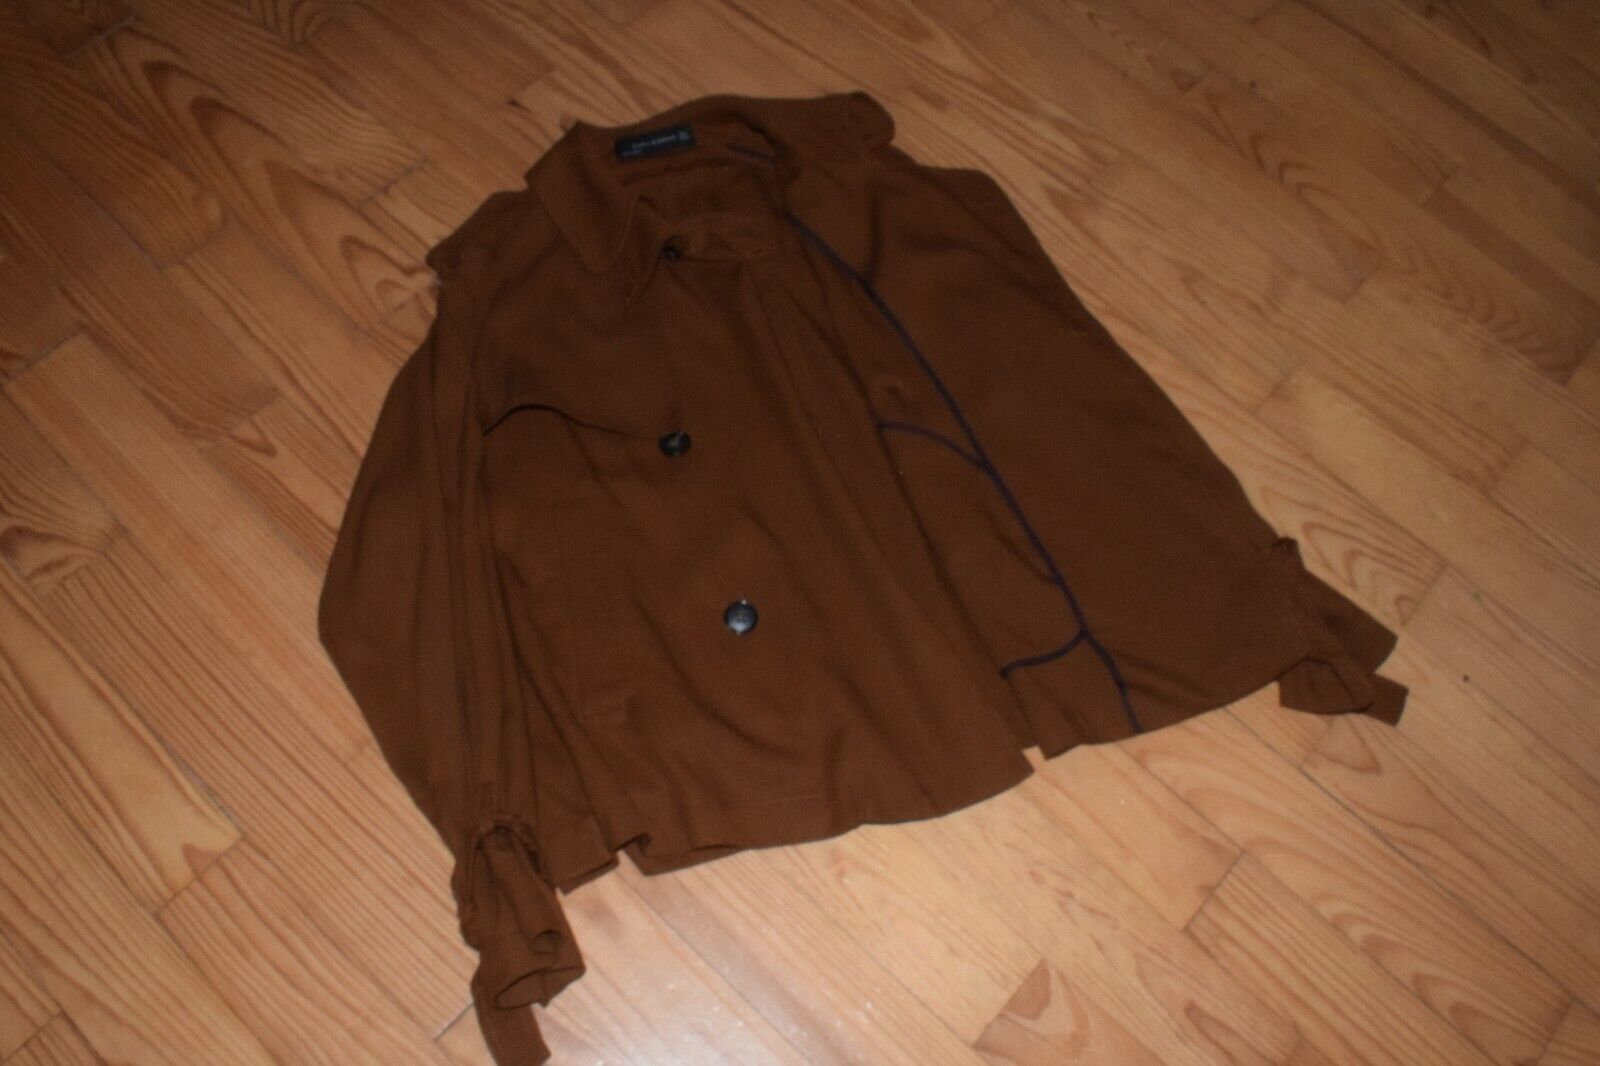 §§§ trench court femme couleur marron fonce taille s zara woman §§§